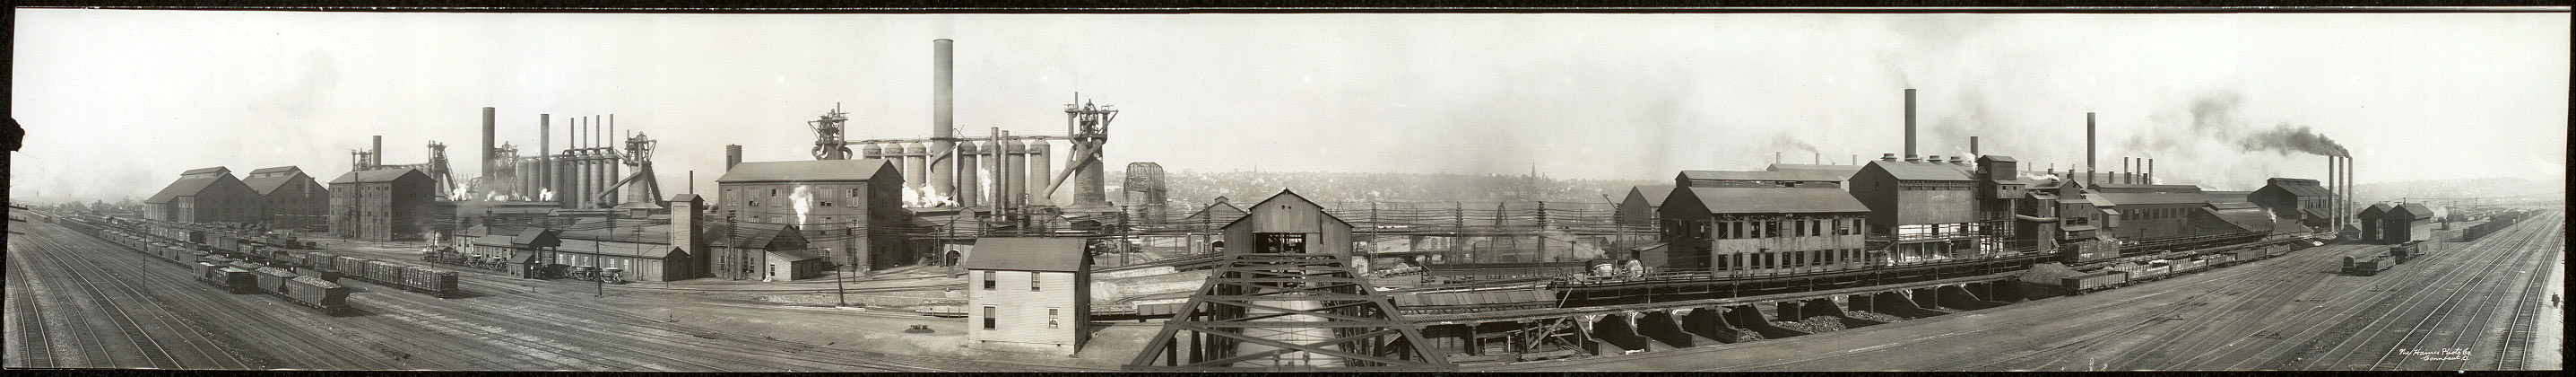 Panoramic photo of the Ohio Works of the Carnegie Steel Company